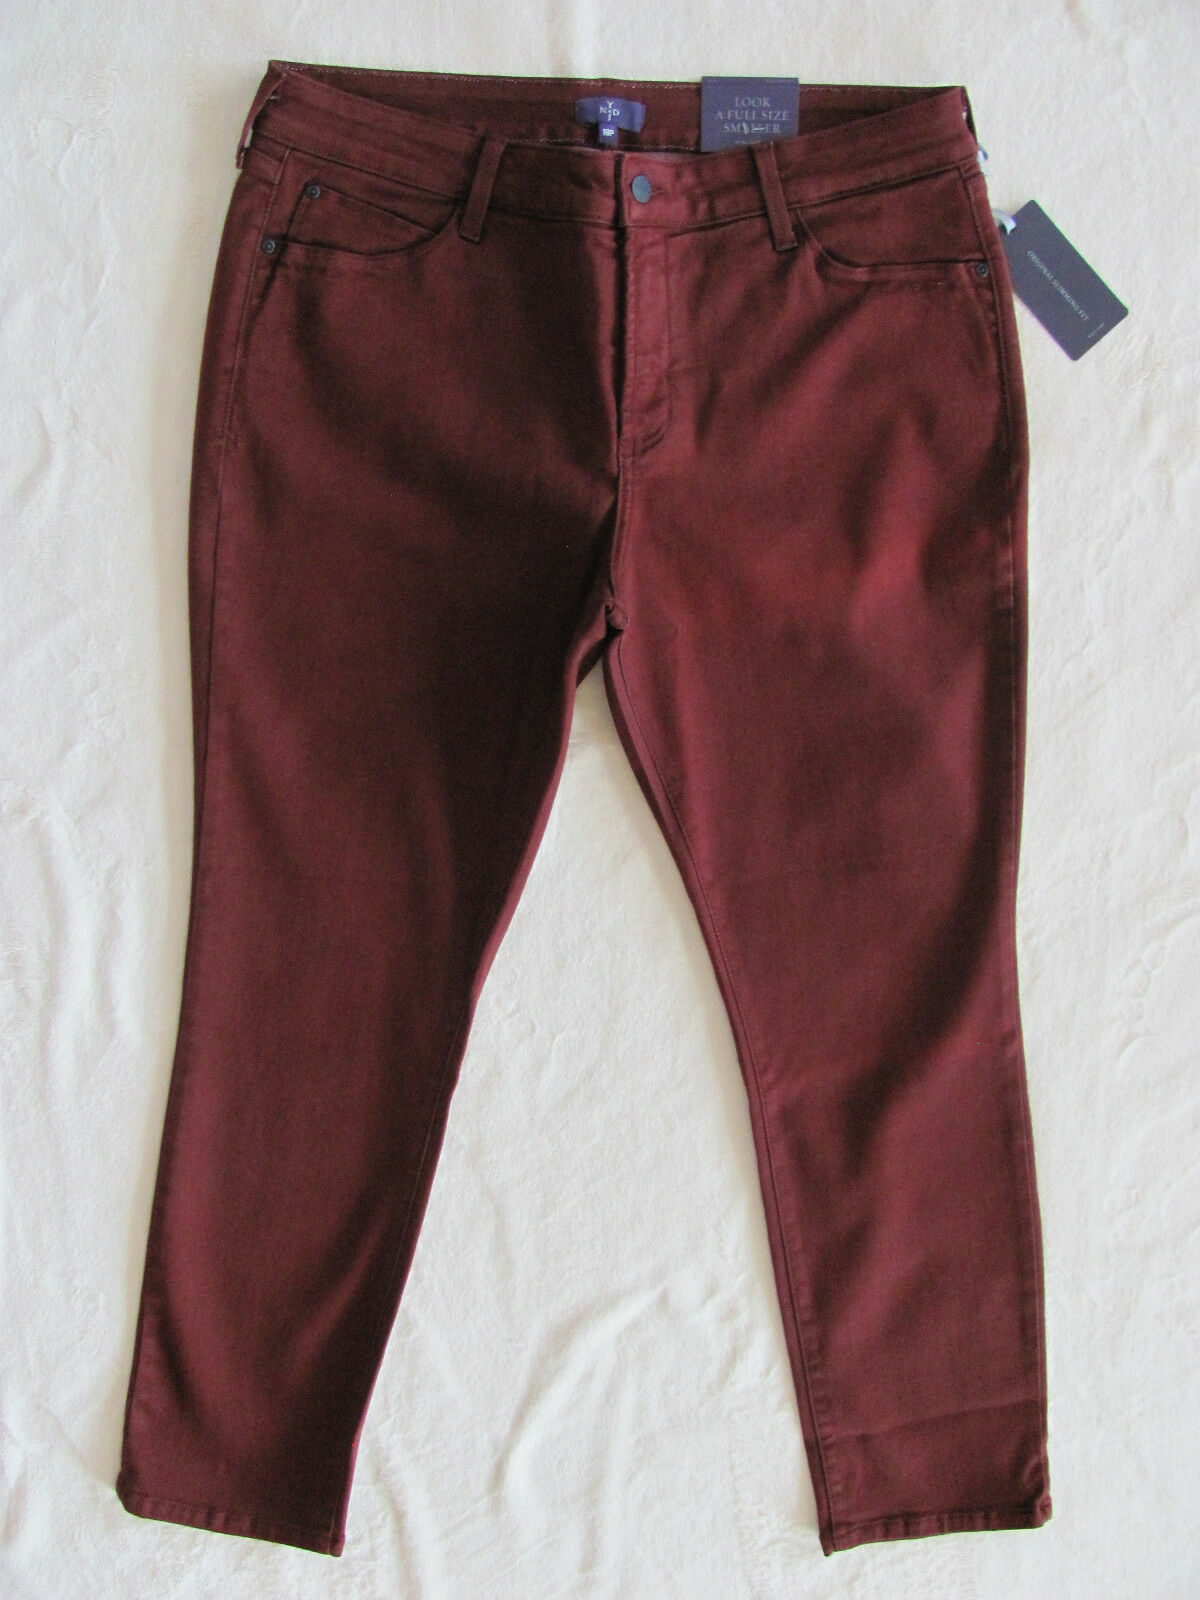 NYDJ Not Your Daughter's Jeans Alina Skinny Jean Legging- Oxblood-Size 18P-NWT